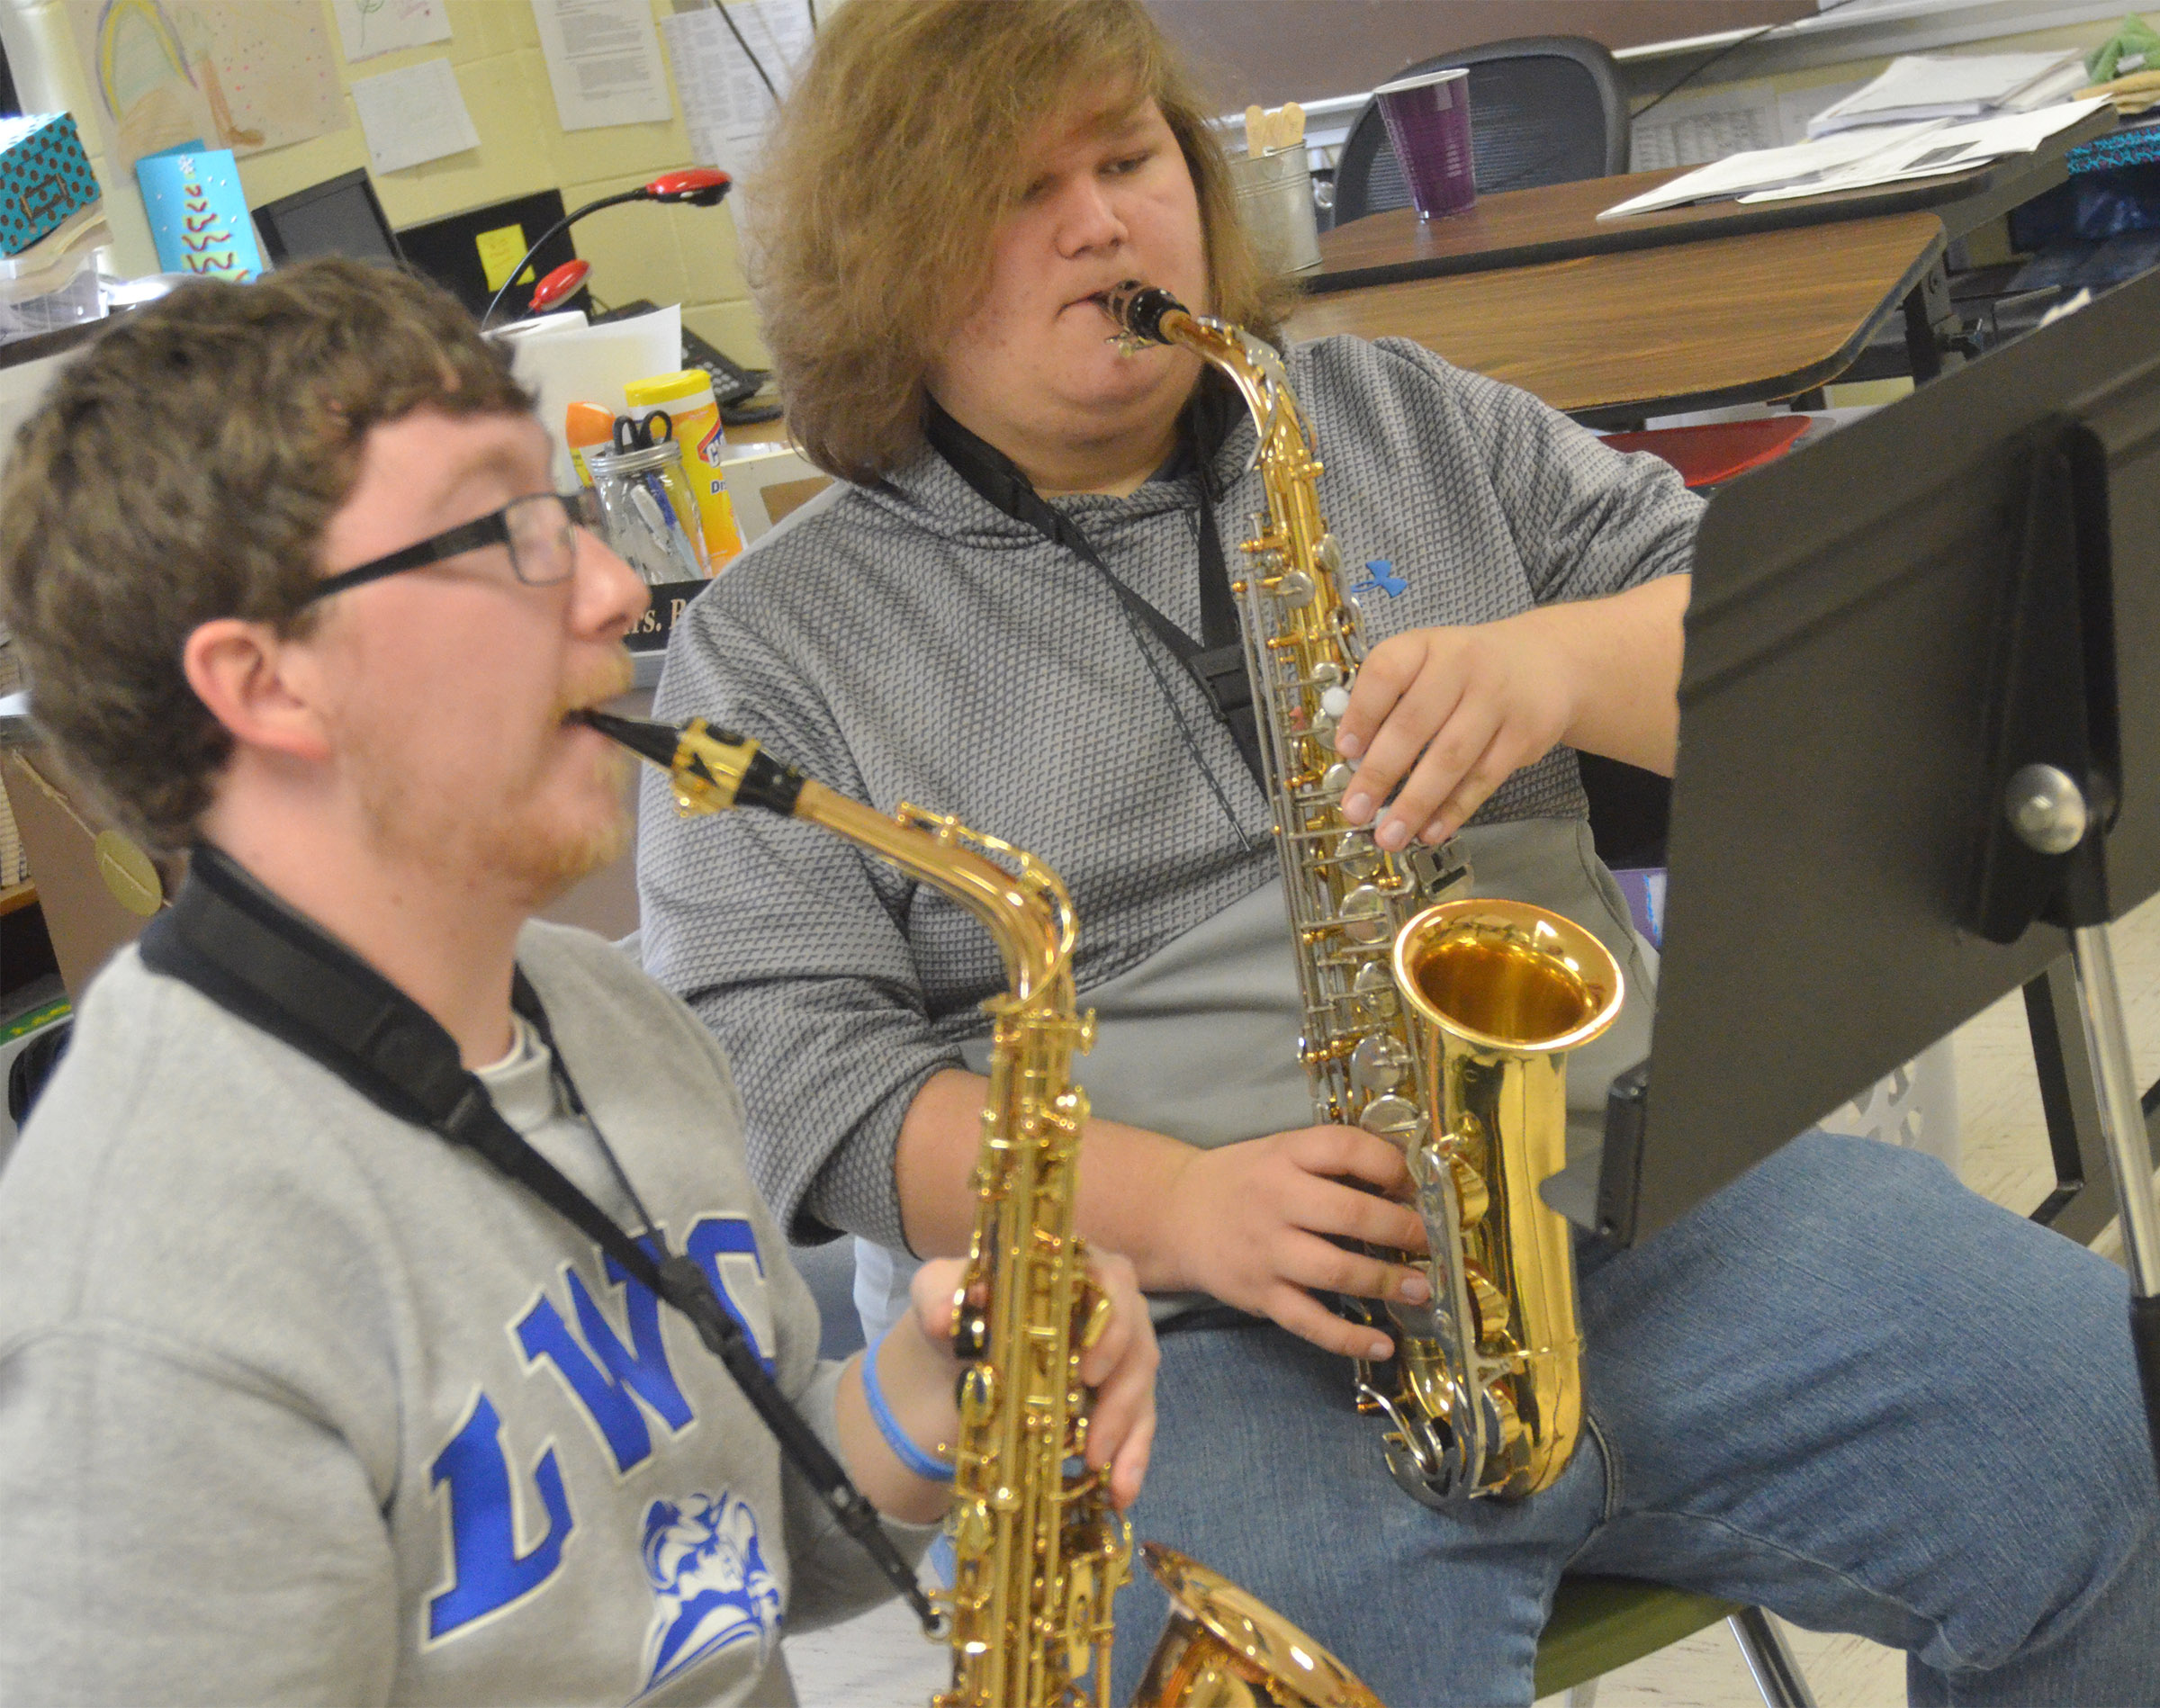 CHS sophomore Randy Harris plays saxophone with Lindsey Wilson College student Jordan Humphress.